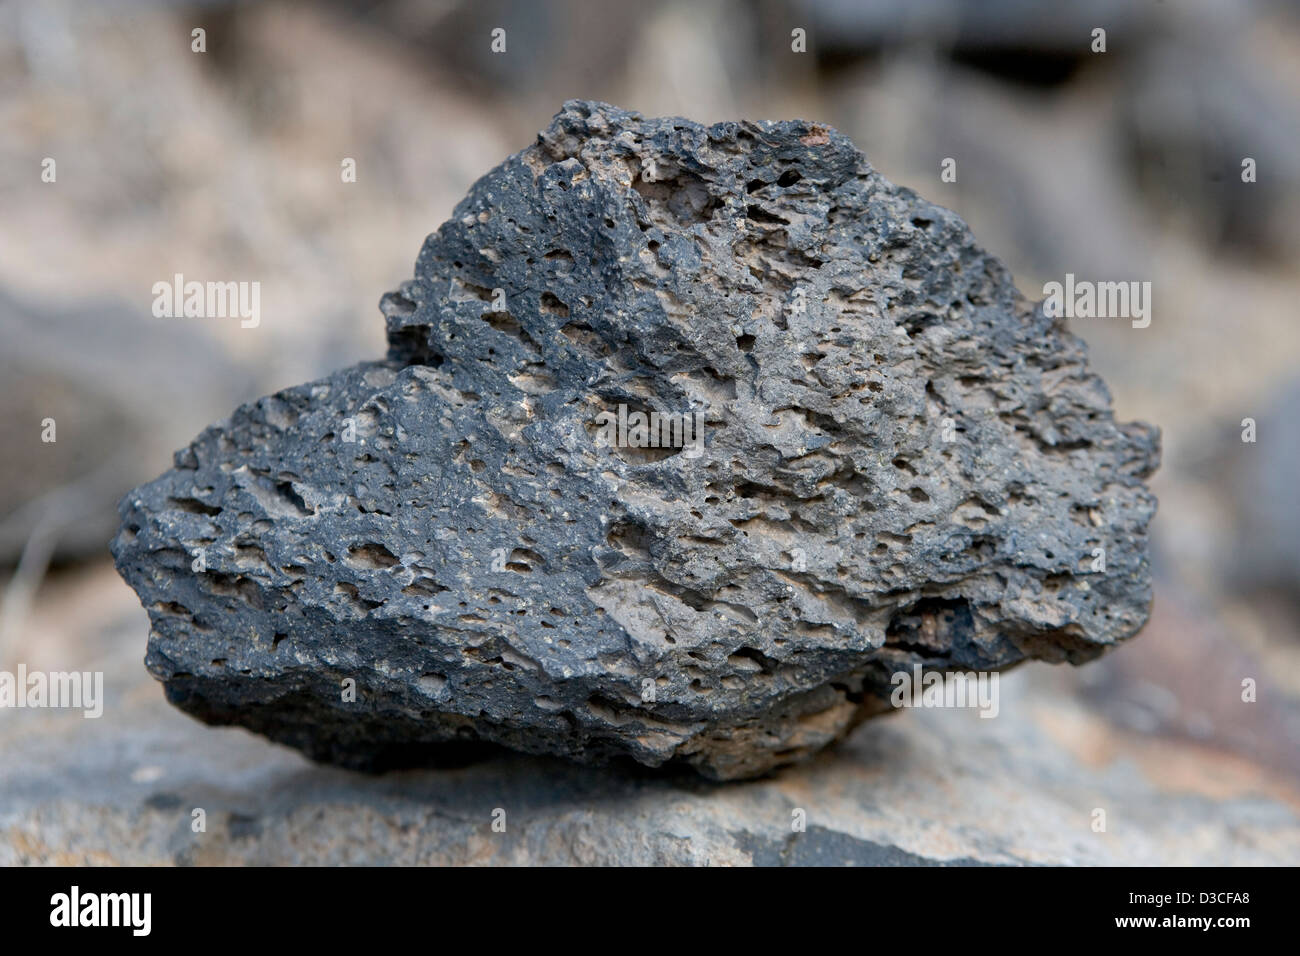 A piece of lava found along the Colorado river in the Grand Canyon - Stock Image